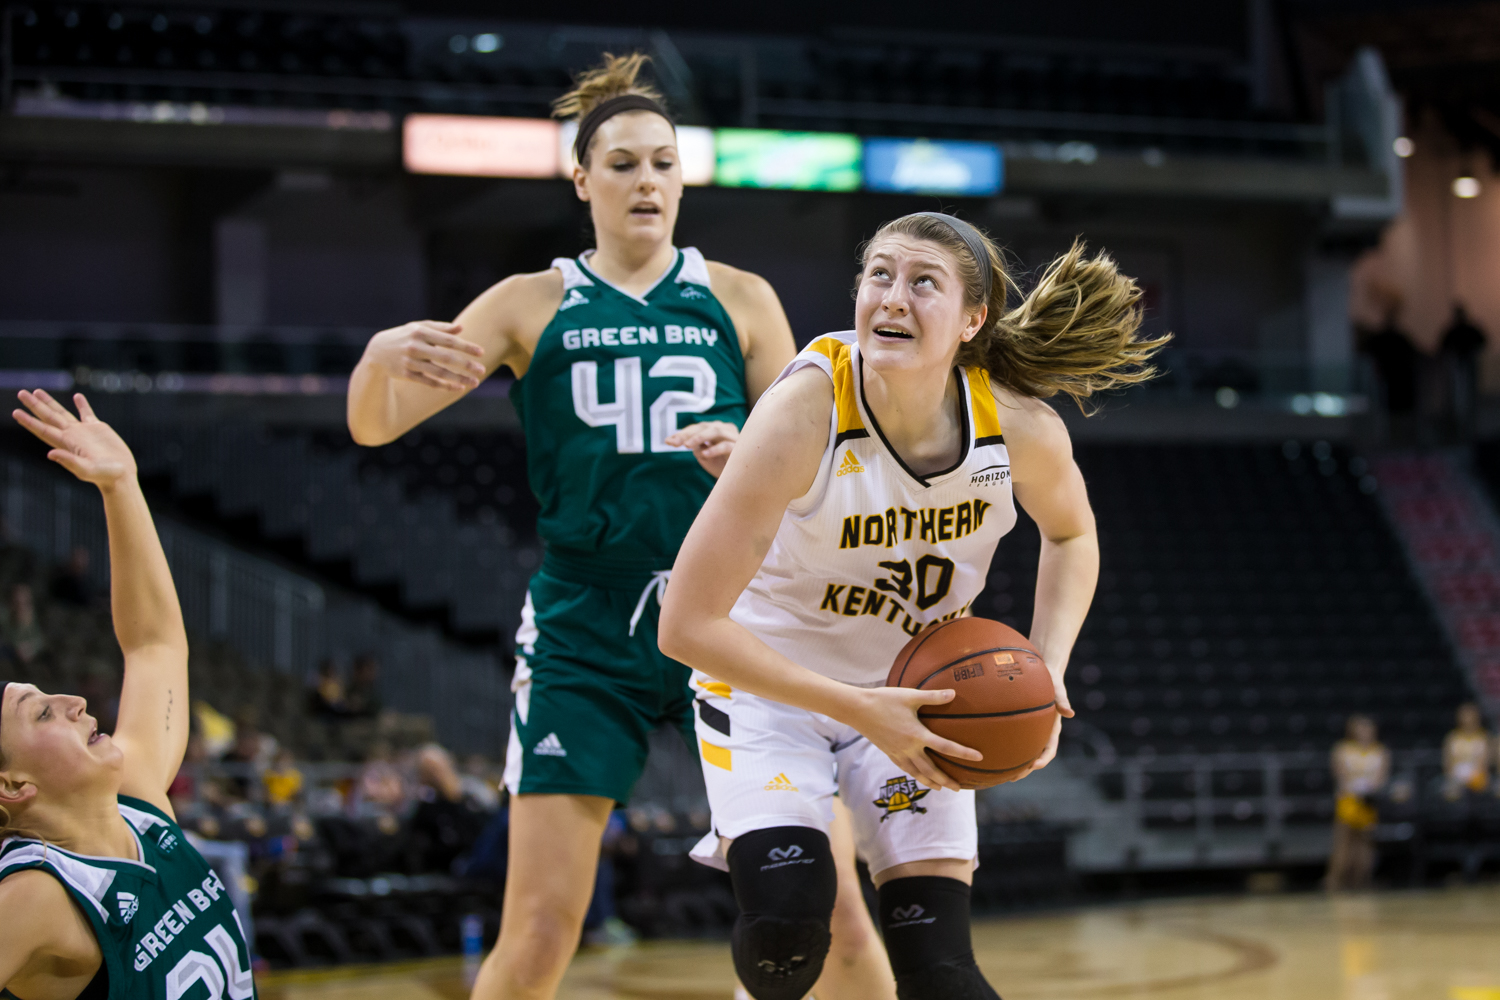 Emmy Souder (30) fights to shoot during the game against Green Bay. Souder shot 2-of-4 from three and had 10 points on the game.